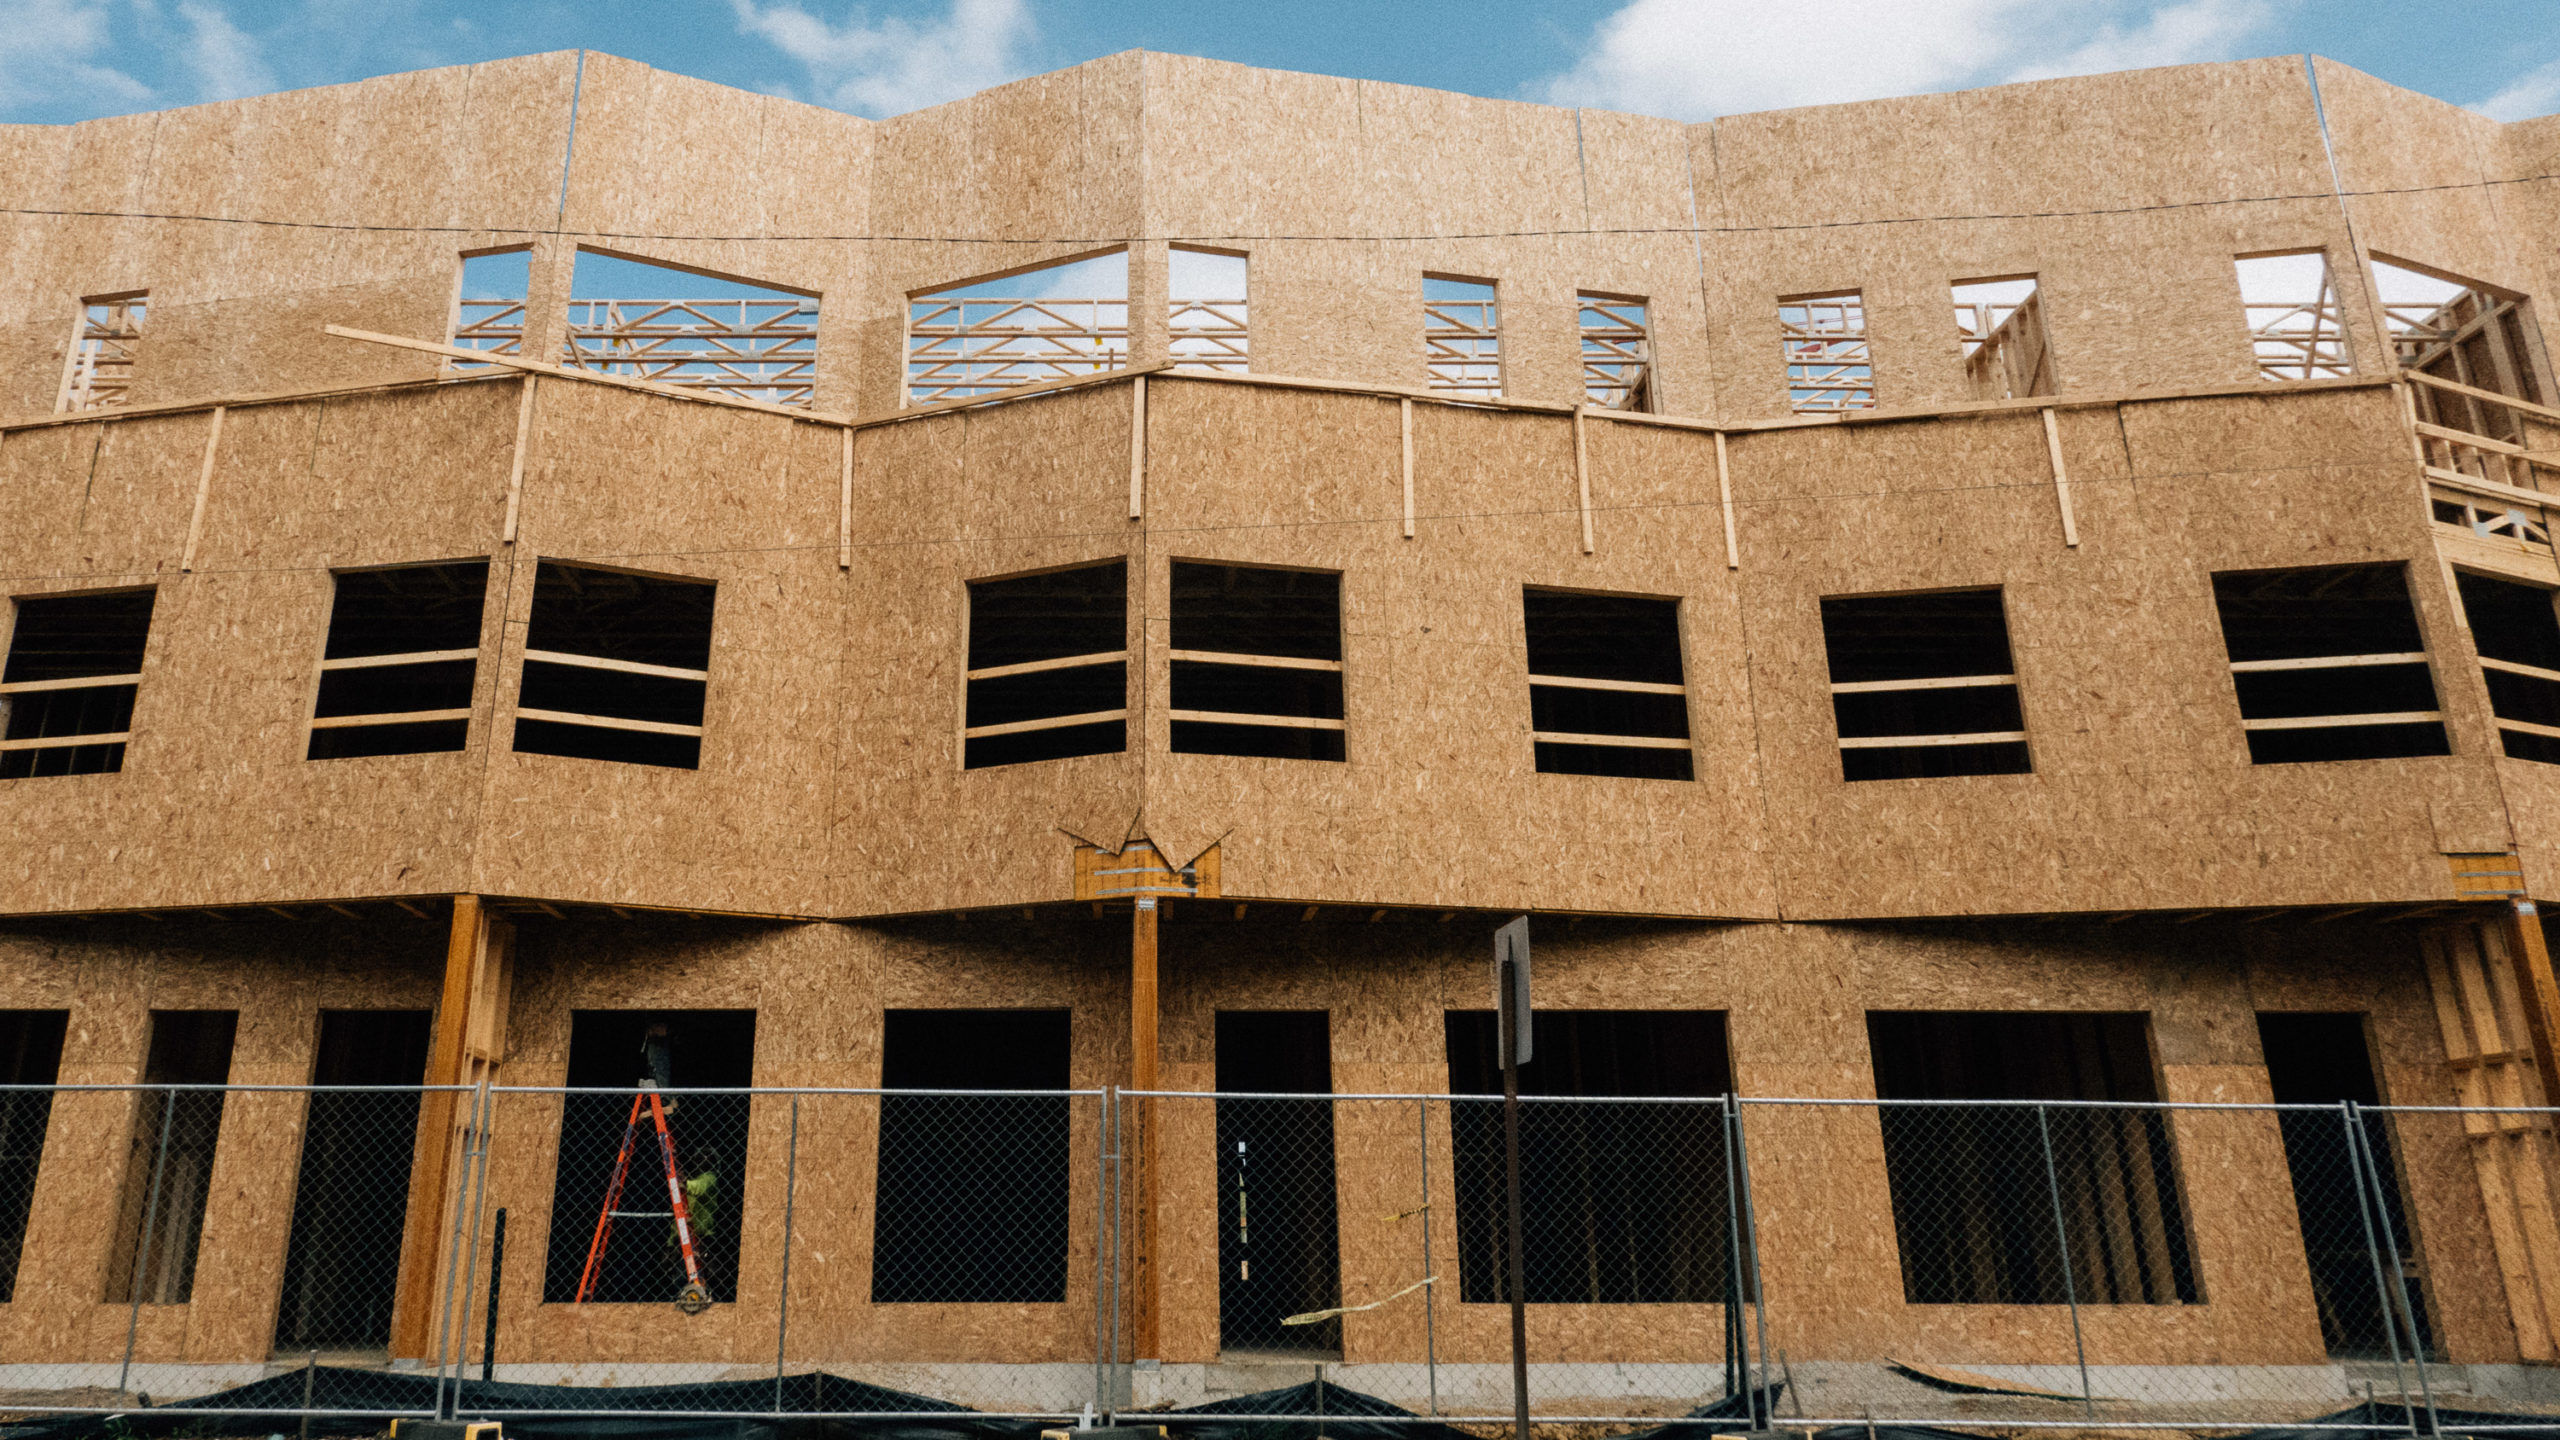 A building made of plywood under construction